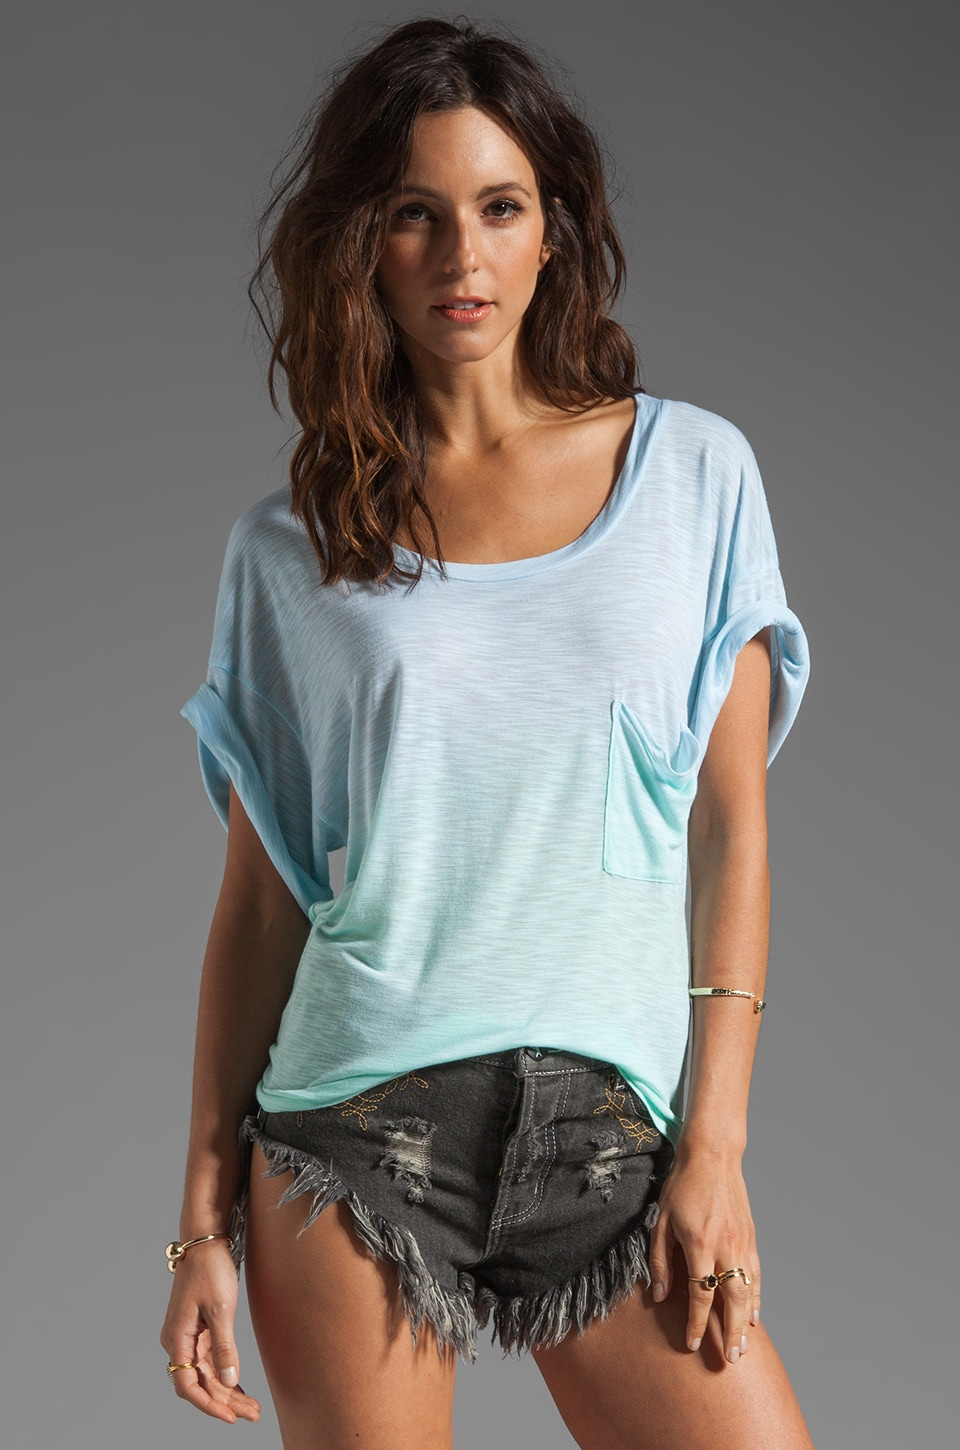 Blue Life Tie Die Best Bum Tee in Mint/Ocean Breeze